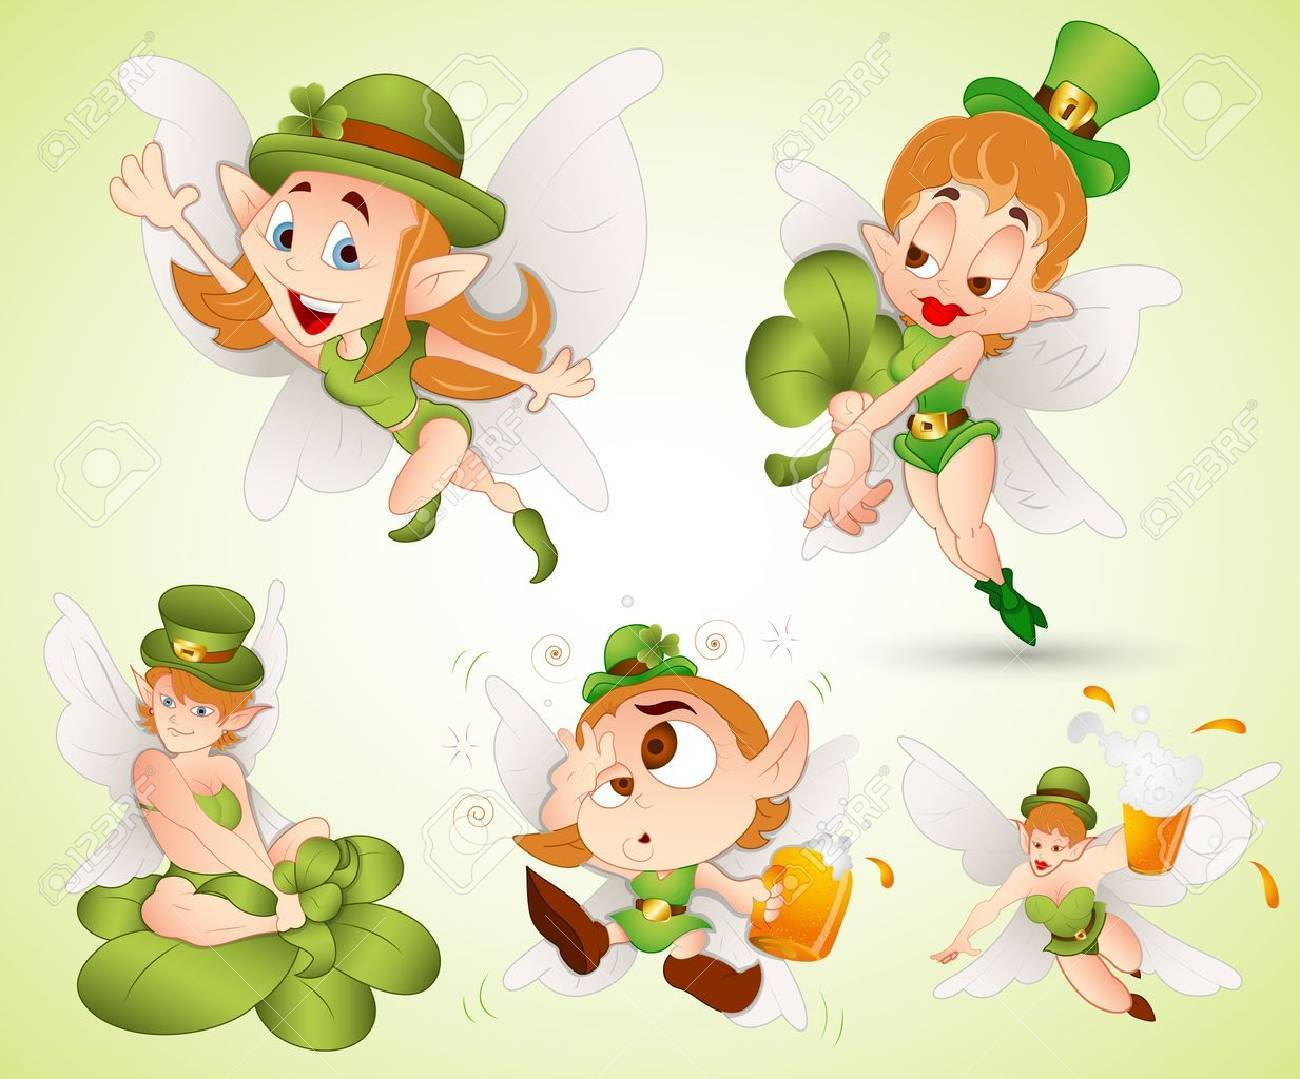 St  Patrick s Day Fairies Stock Vector - 12498293